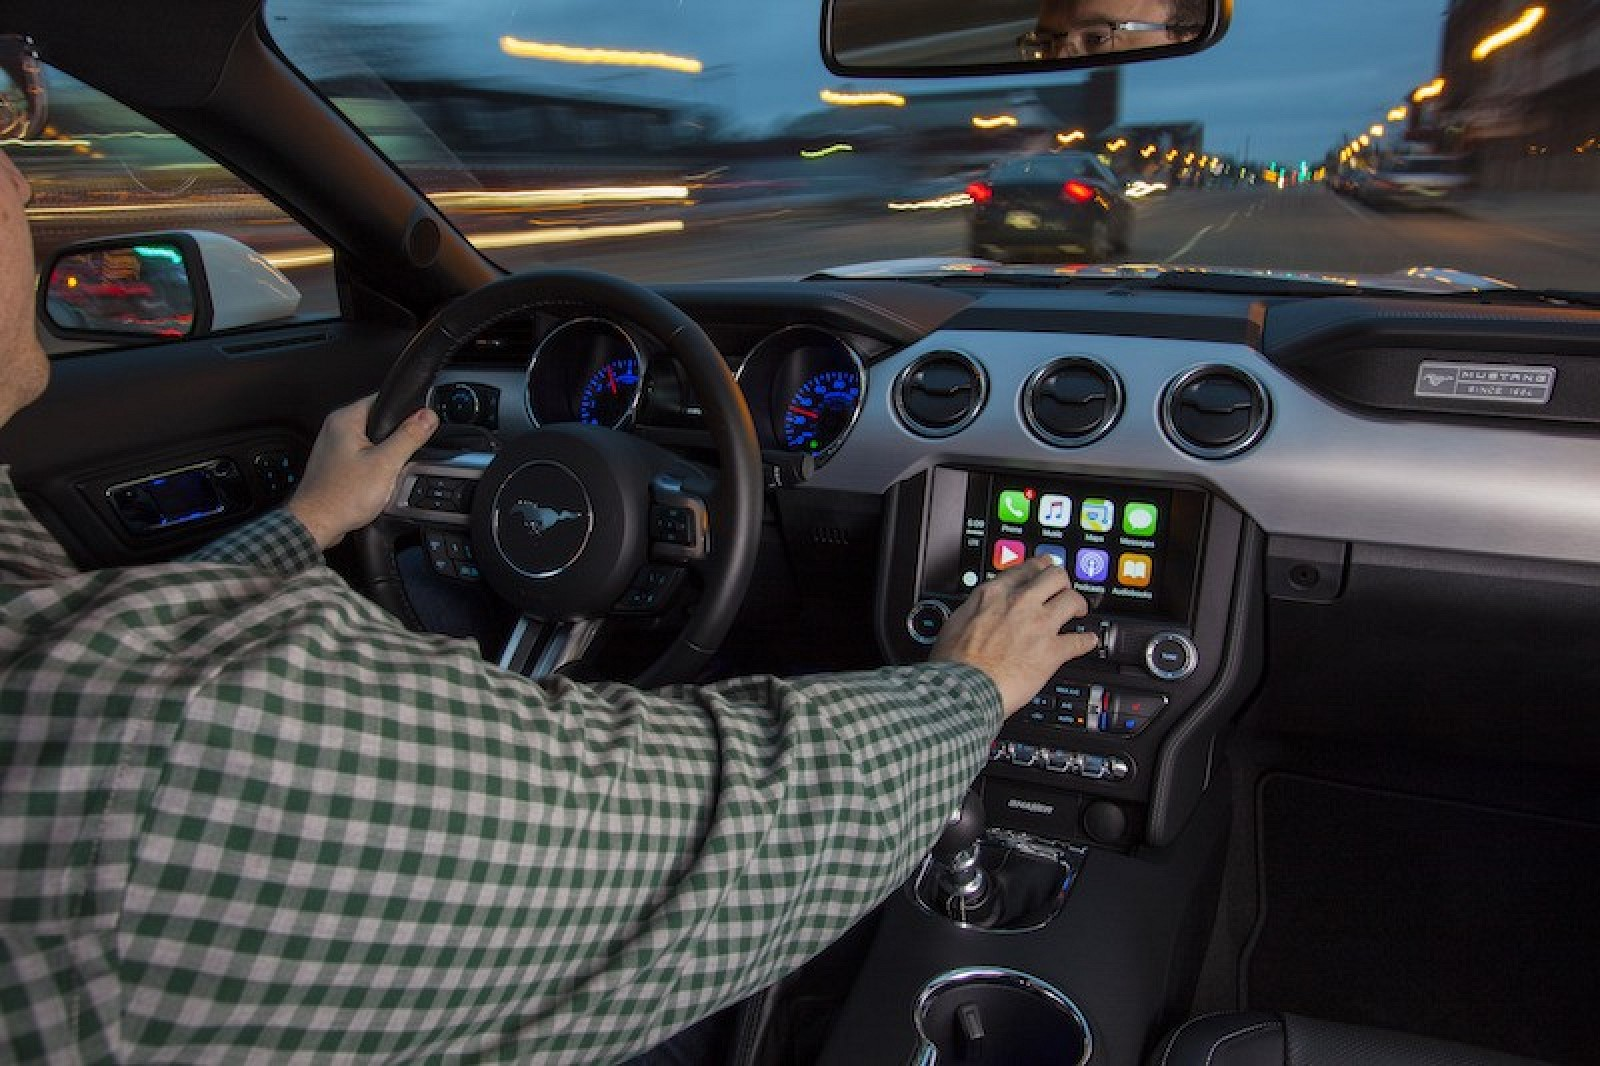 Toyota and Ford Create Automaker Group to Promote Open Source Smartphone Interfaces - Mac Rumors & Toyota and Ford Create Automaker Group to Promote Open Source ... markmcfarlin.com